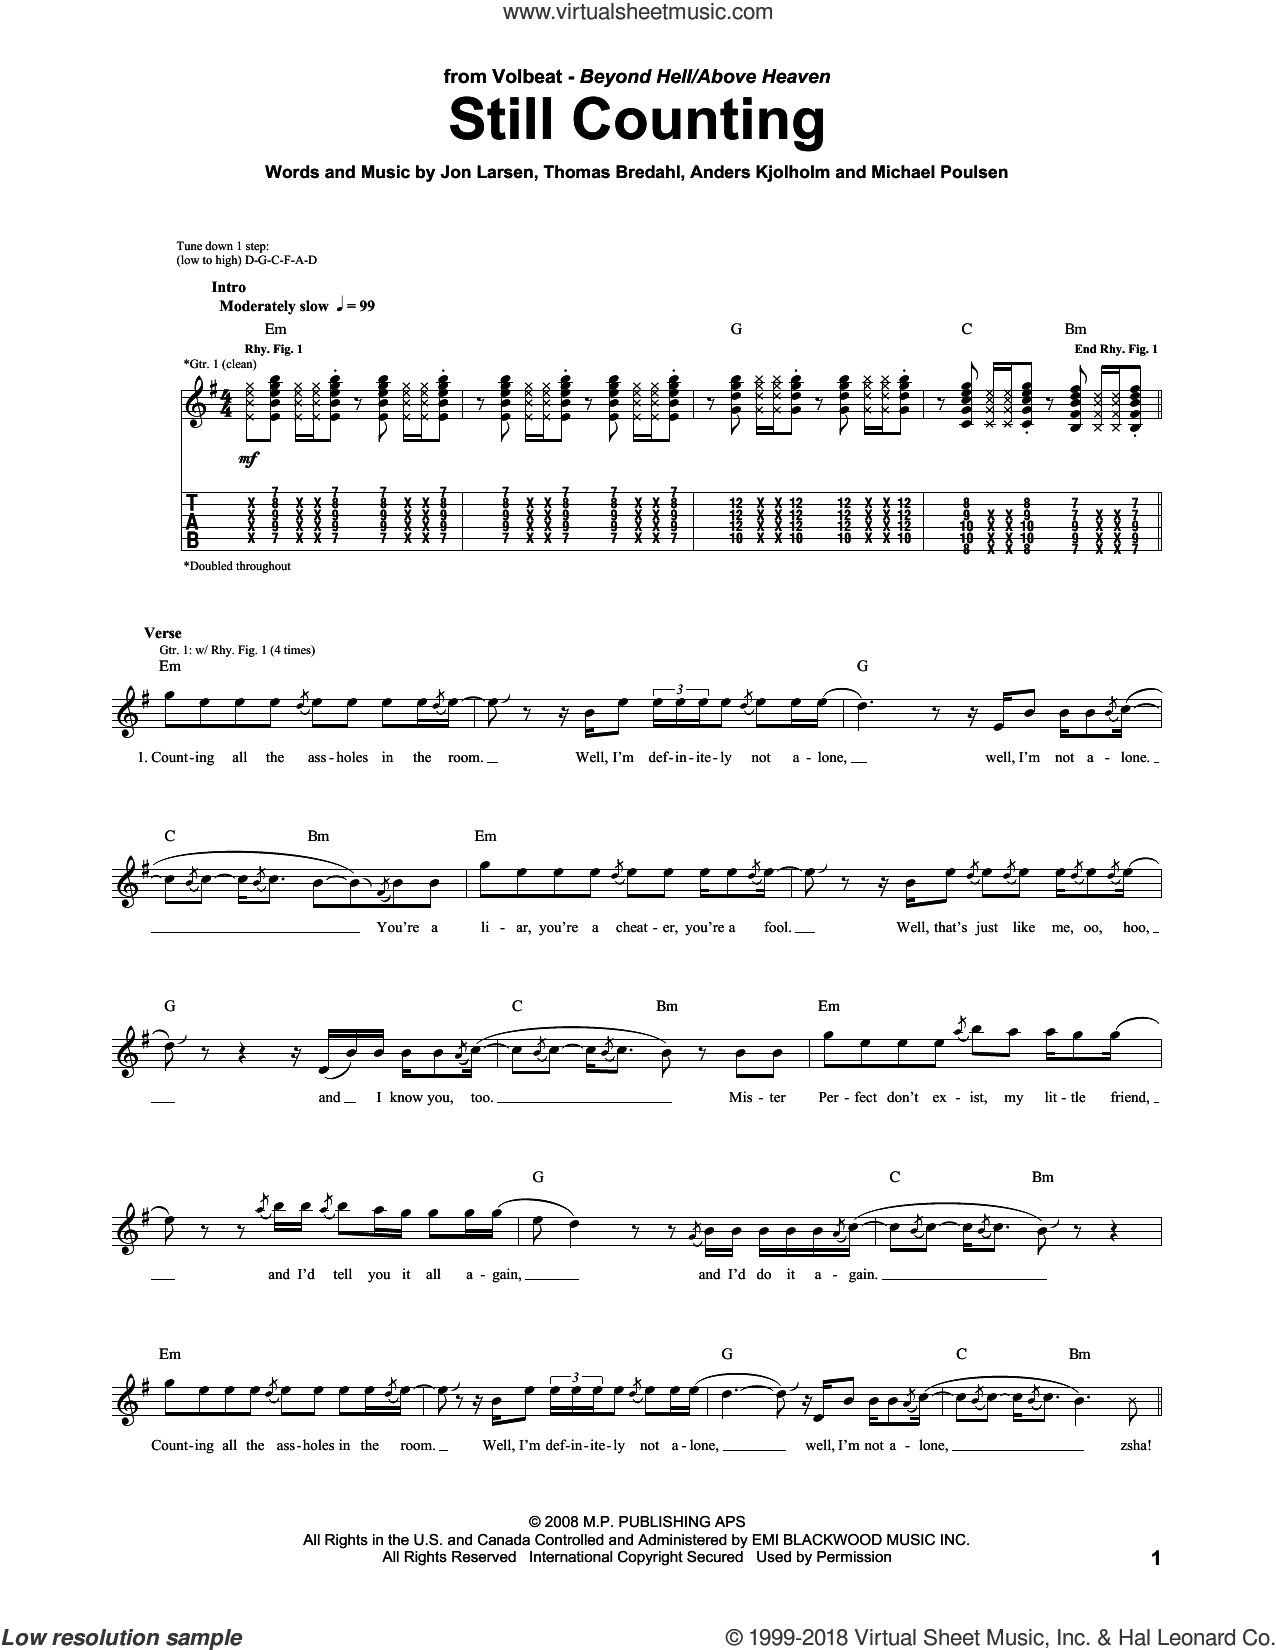 Still Counting sheet music for guitar (tablature) by Thomas Bredahl